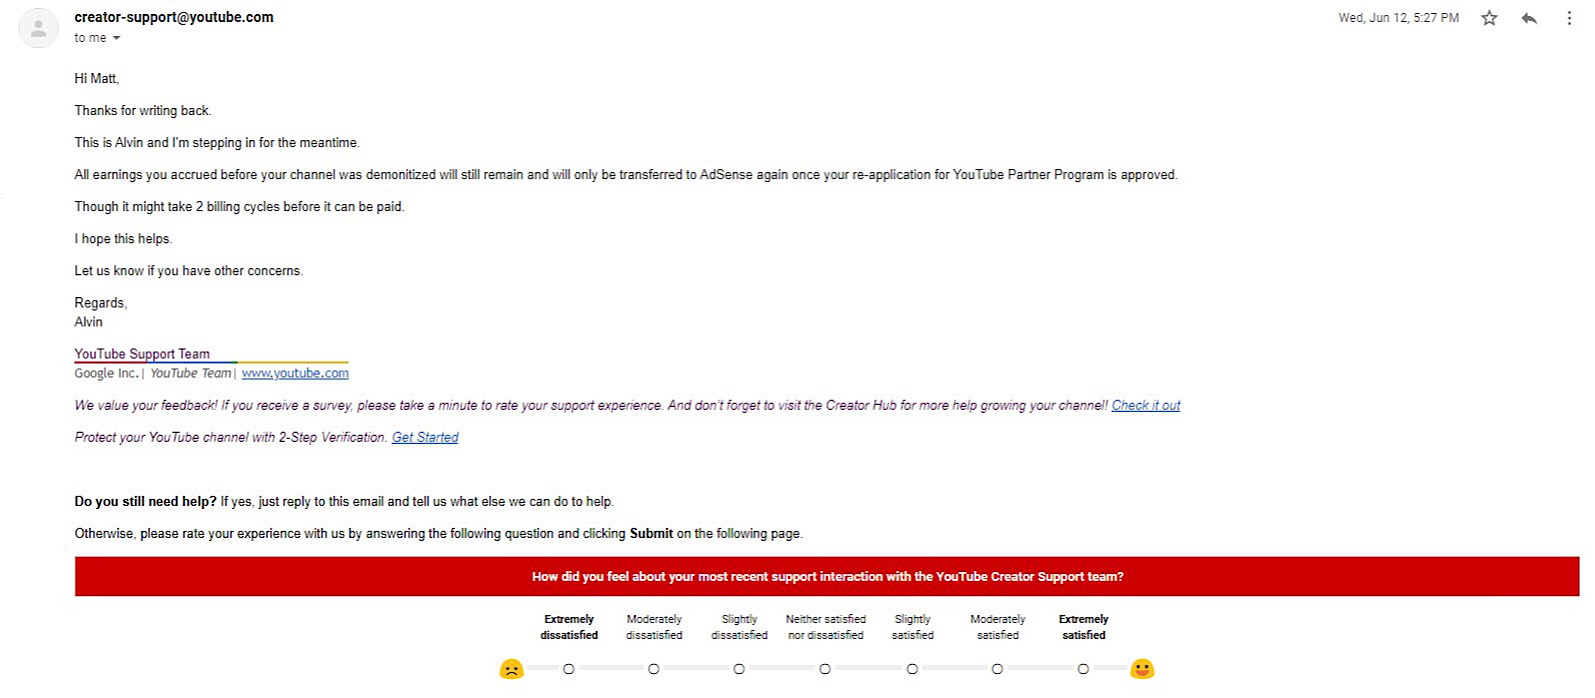 """YouTube's private statement that """"all earnings you accrued before your channel was demonitized will still remain and will only be transferred to AdSense again once your re-application for YouTube Partner Program is approved."""""""